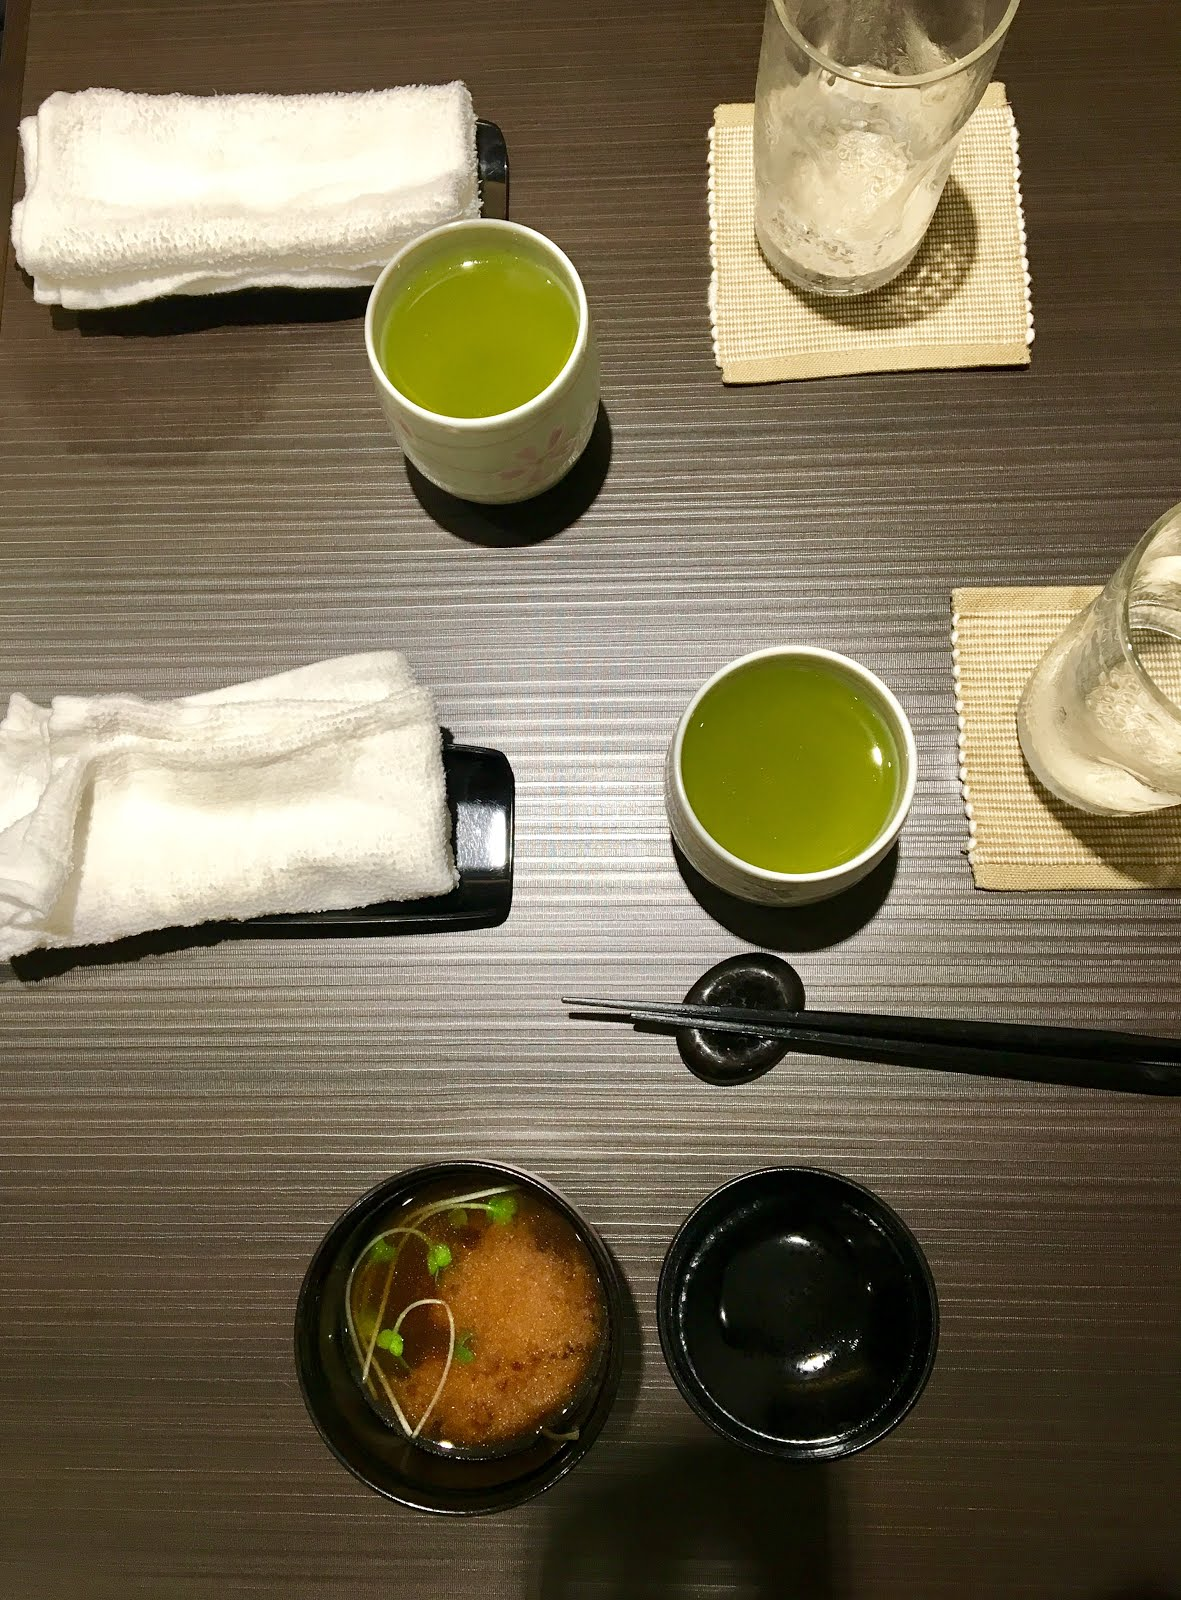 Green tea and miso soup, yes please!